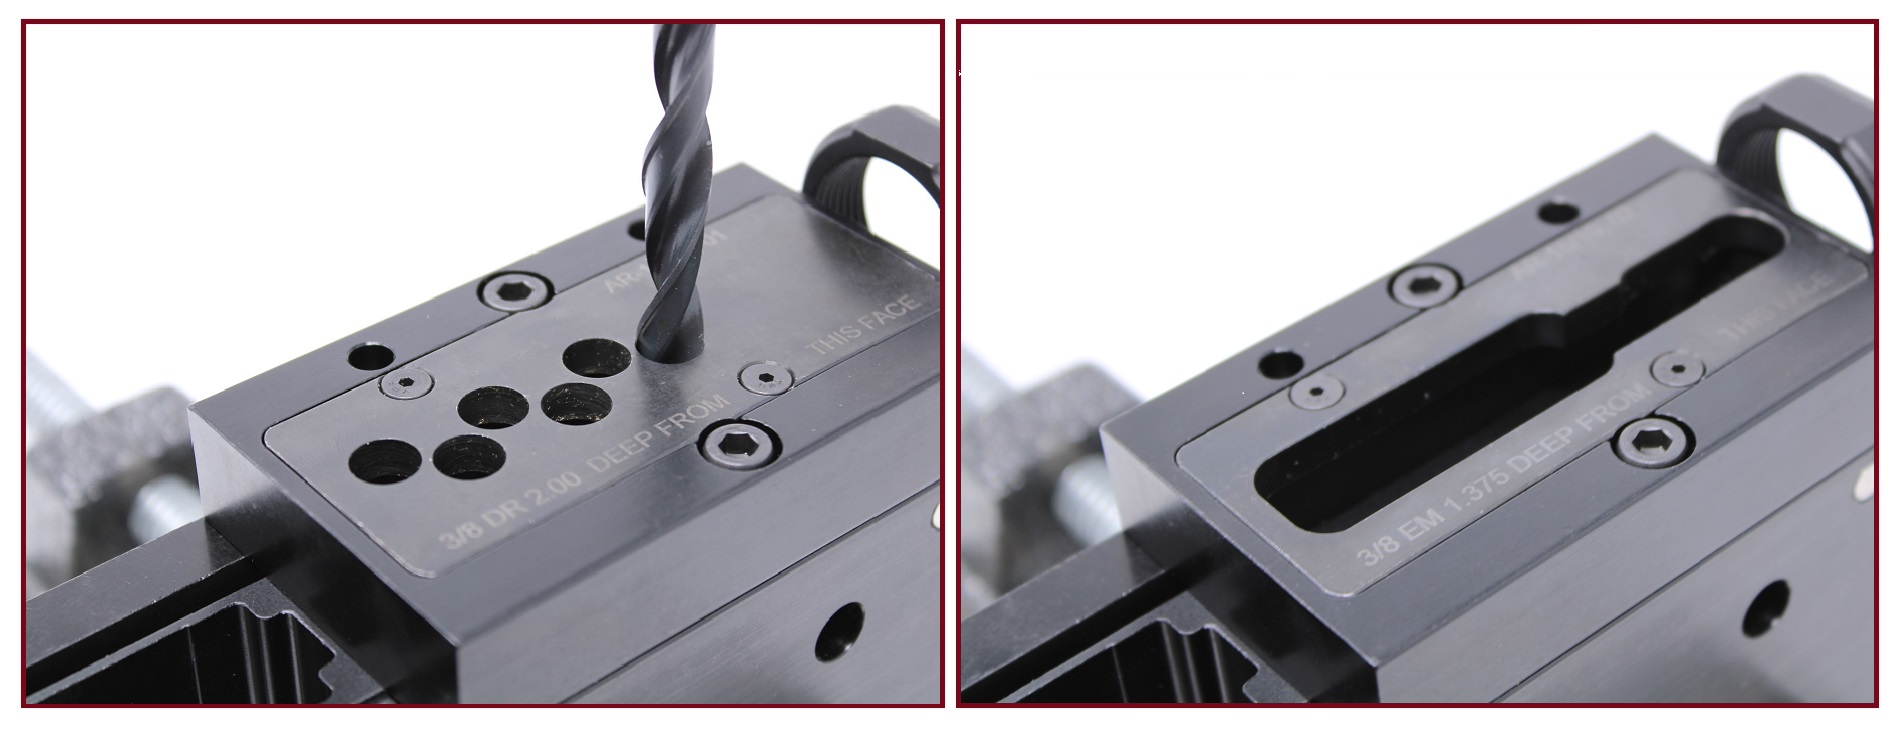 How to Machine an 80% Lower Receiver (AR15) Quick and Easy